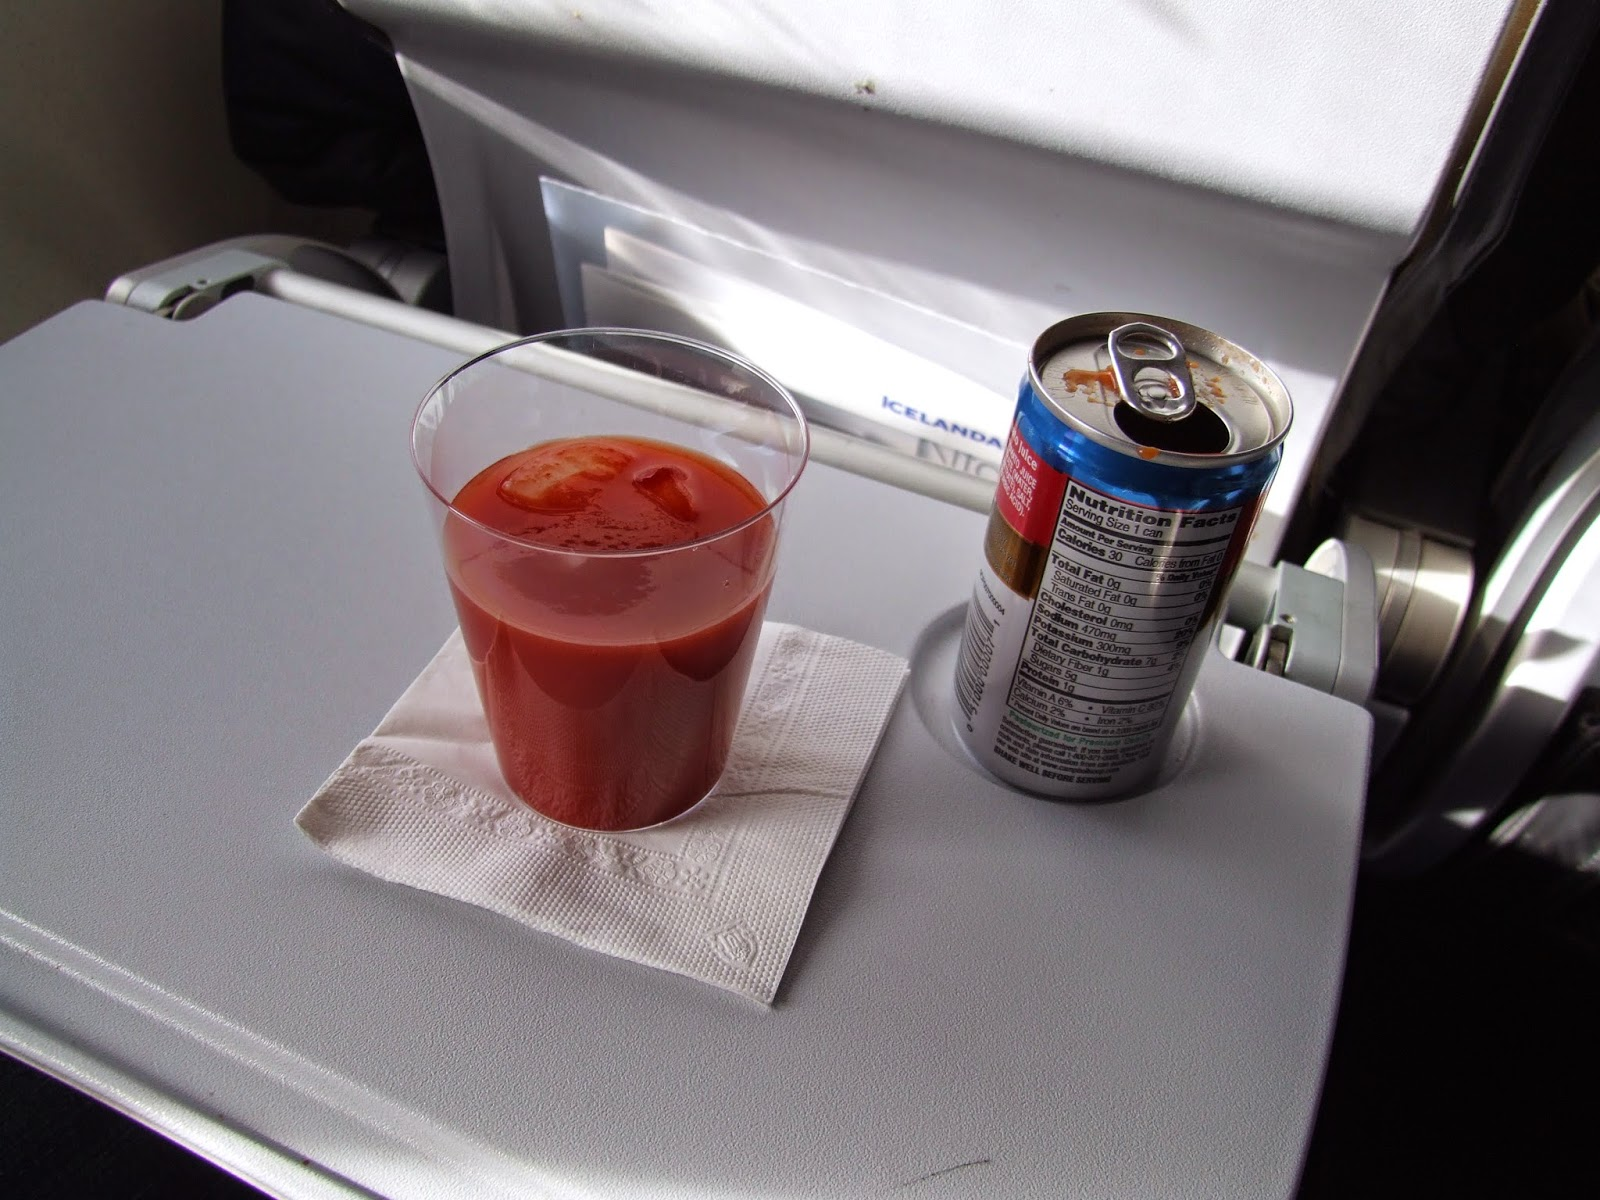 Tomato juice in flight